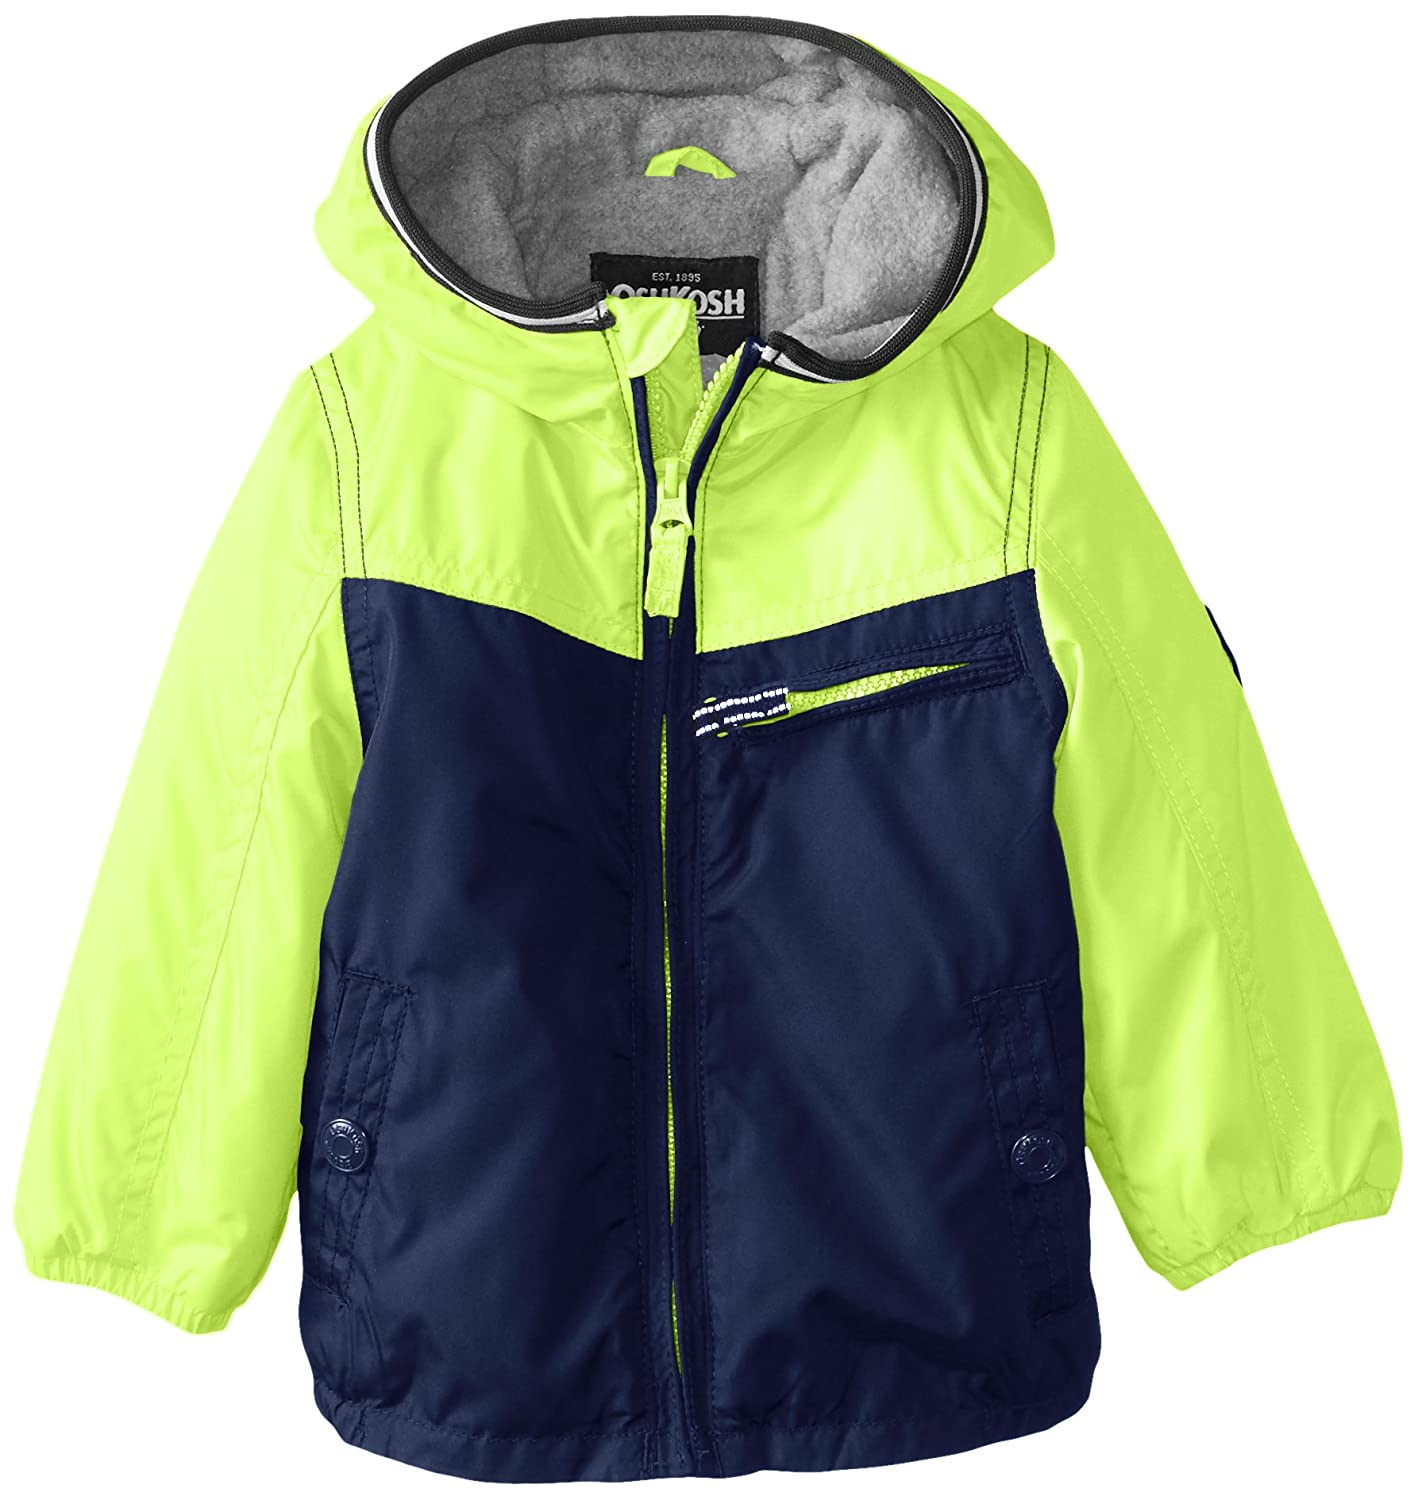 Osh Kosh Baby Boys' Lightweight Single Jacket